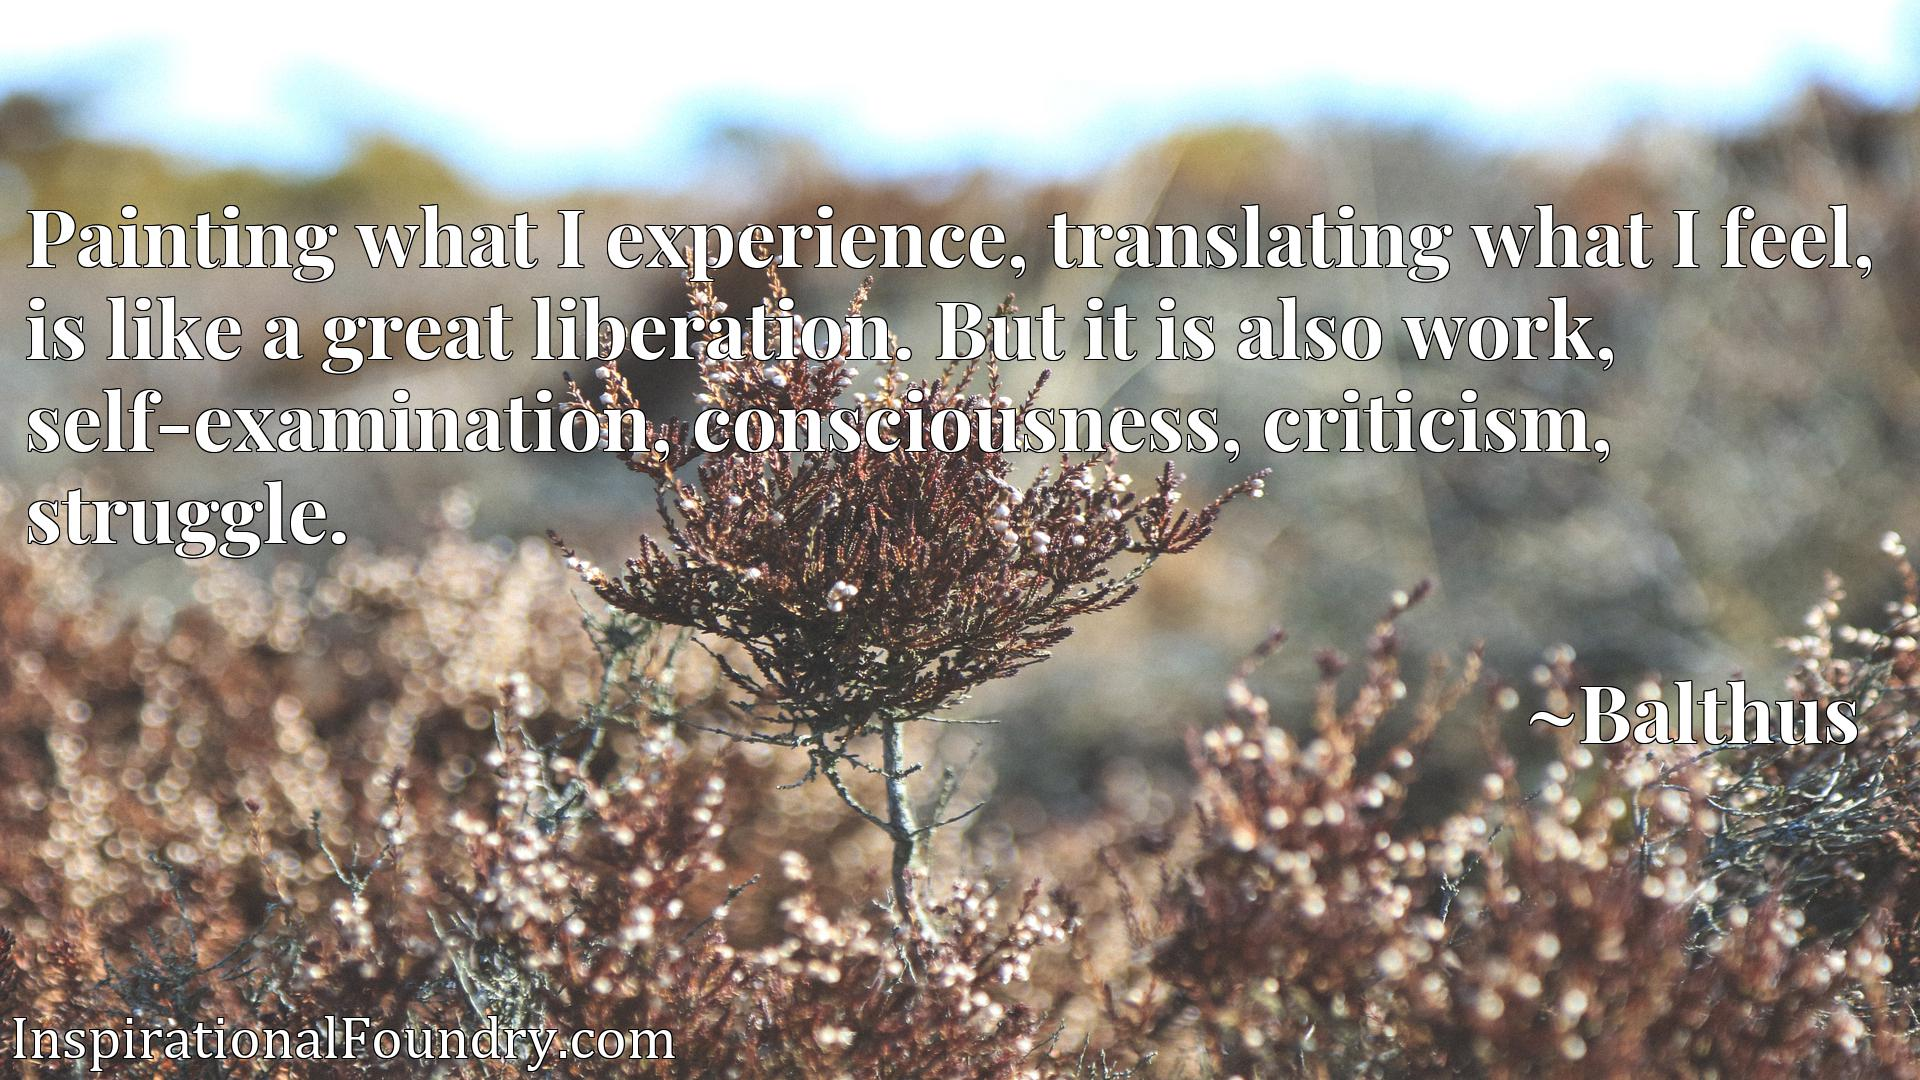 Quote Picture :Painting what I experience, translating what I feel, is like a great liberation. But it is also work, self-examination, consciousness, criticism, struggle.